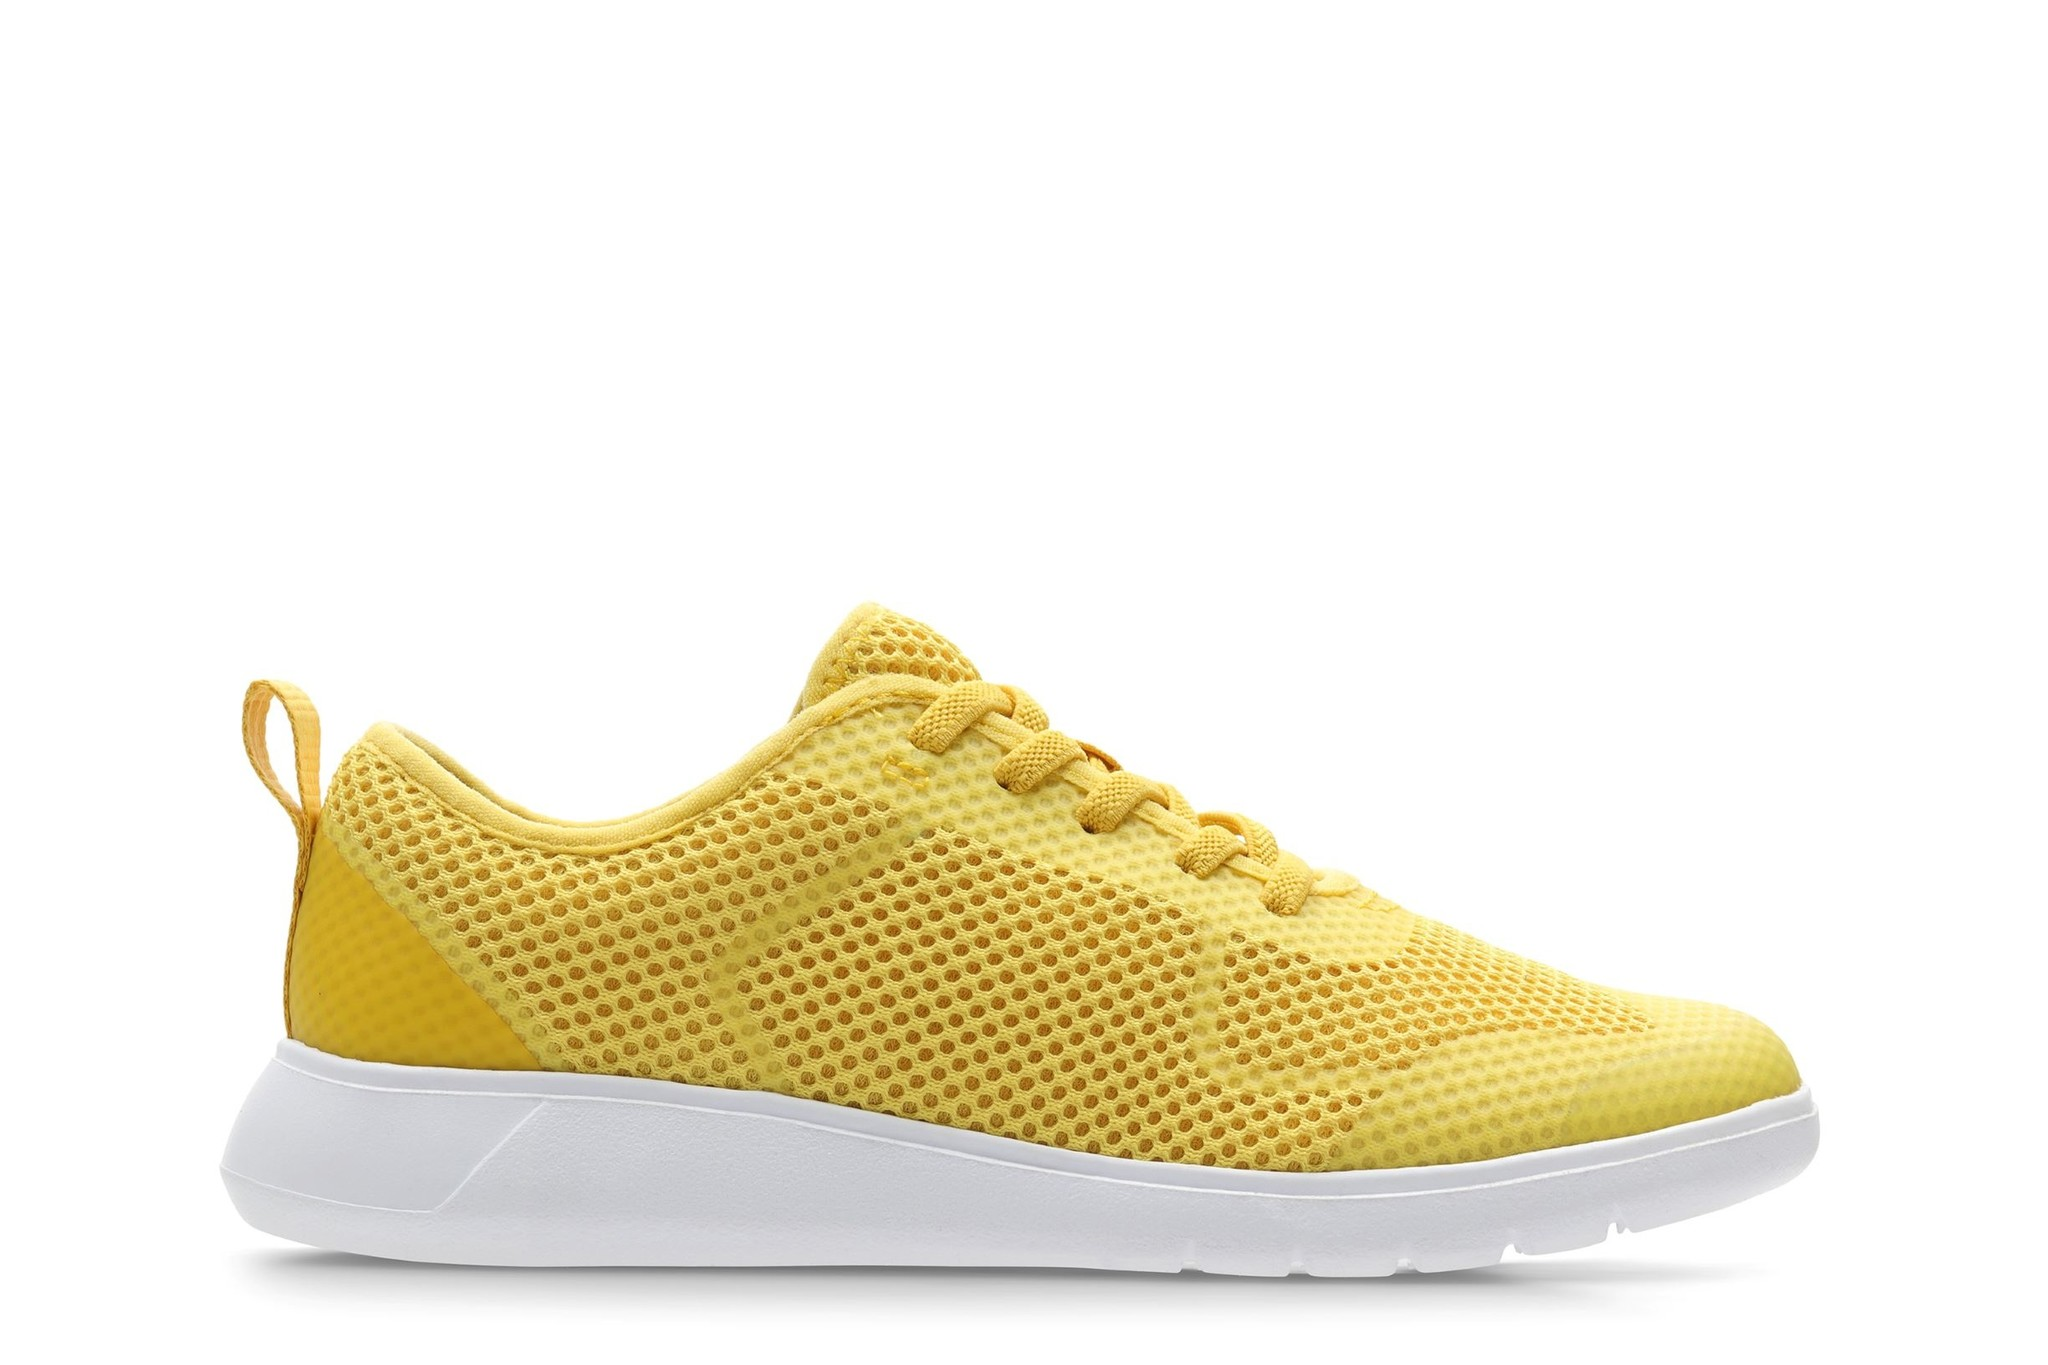 Clarks Scape Soar Yellow Synthetic